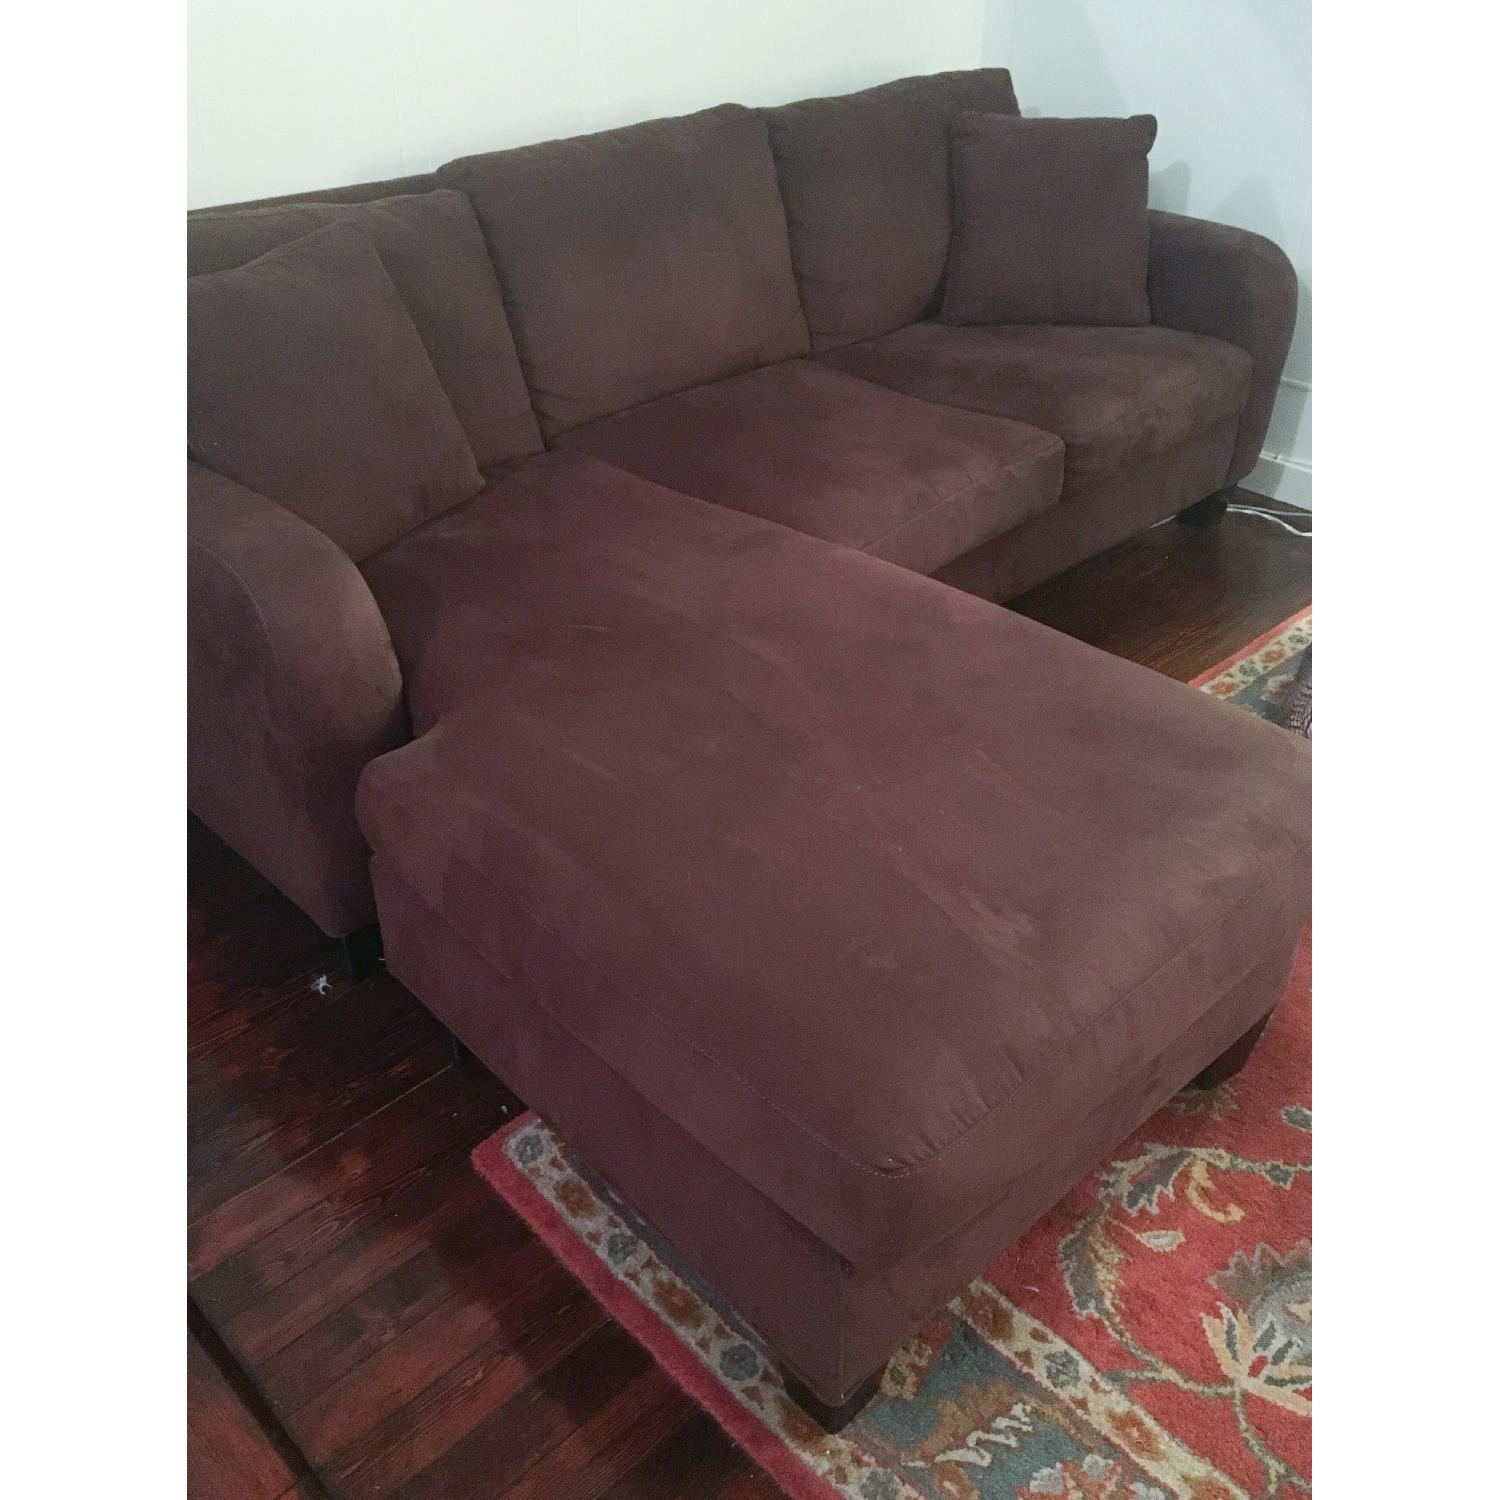 Raymour & Flanigan Dark Brown Microfiber Chaise Sectional Sofa - image-4